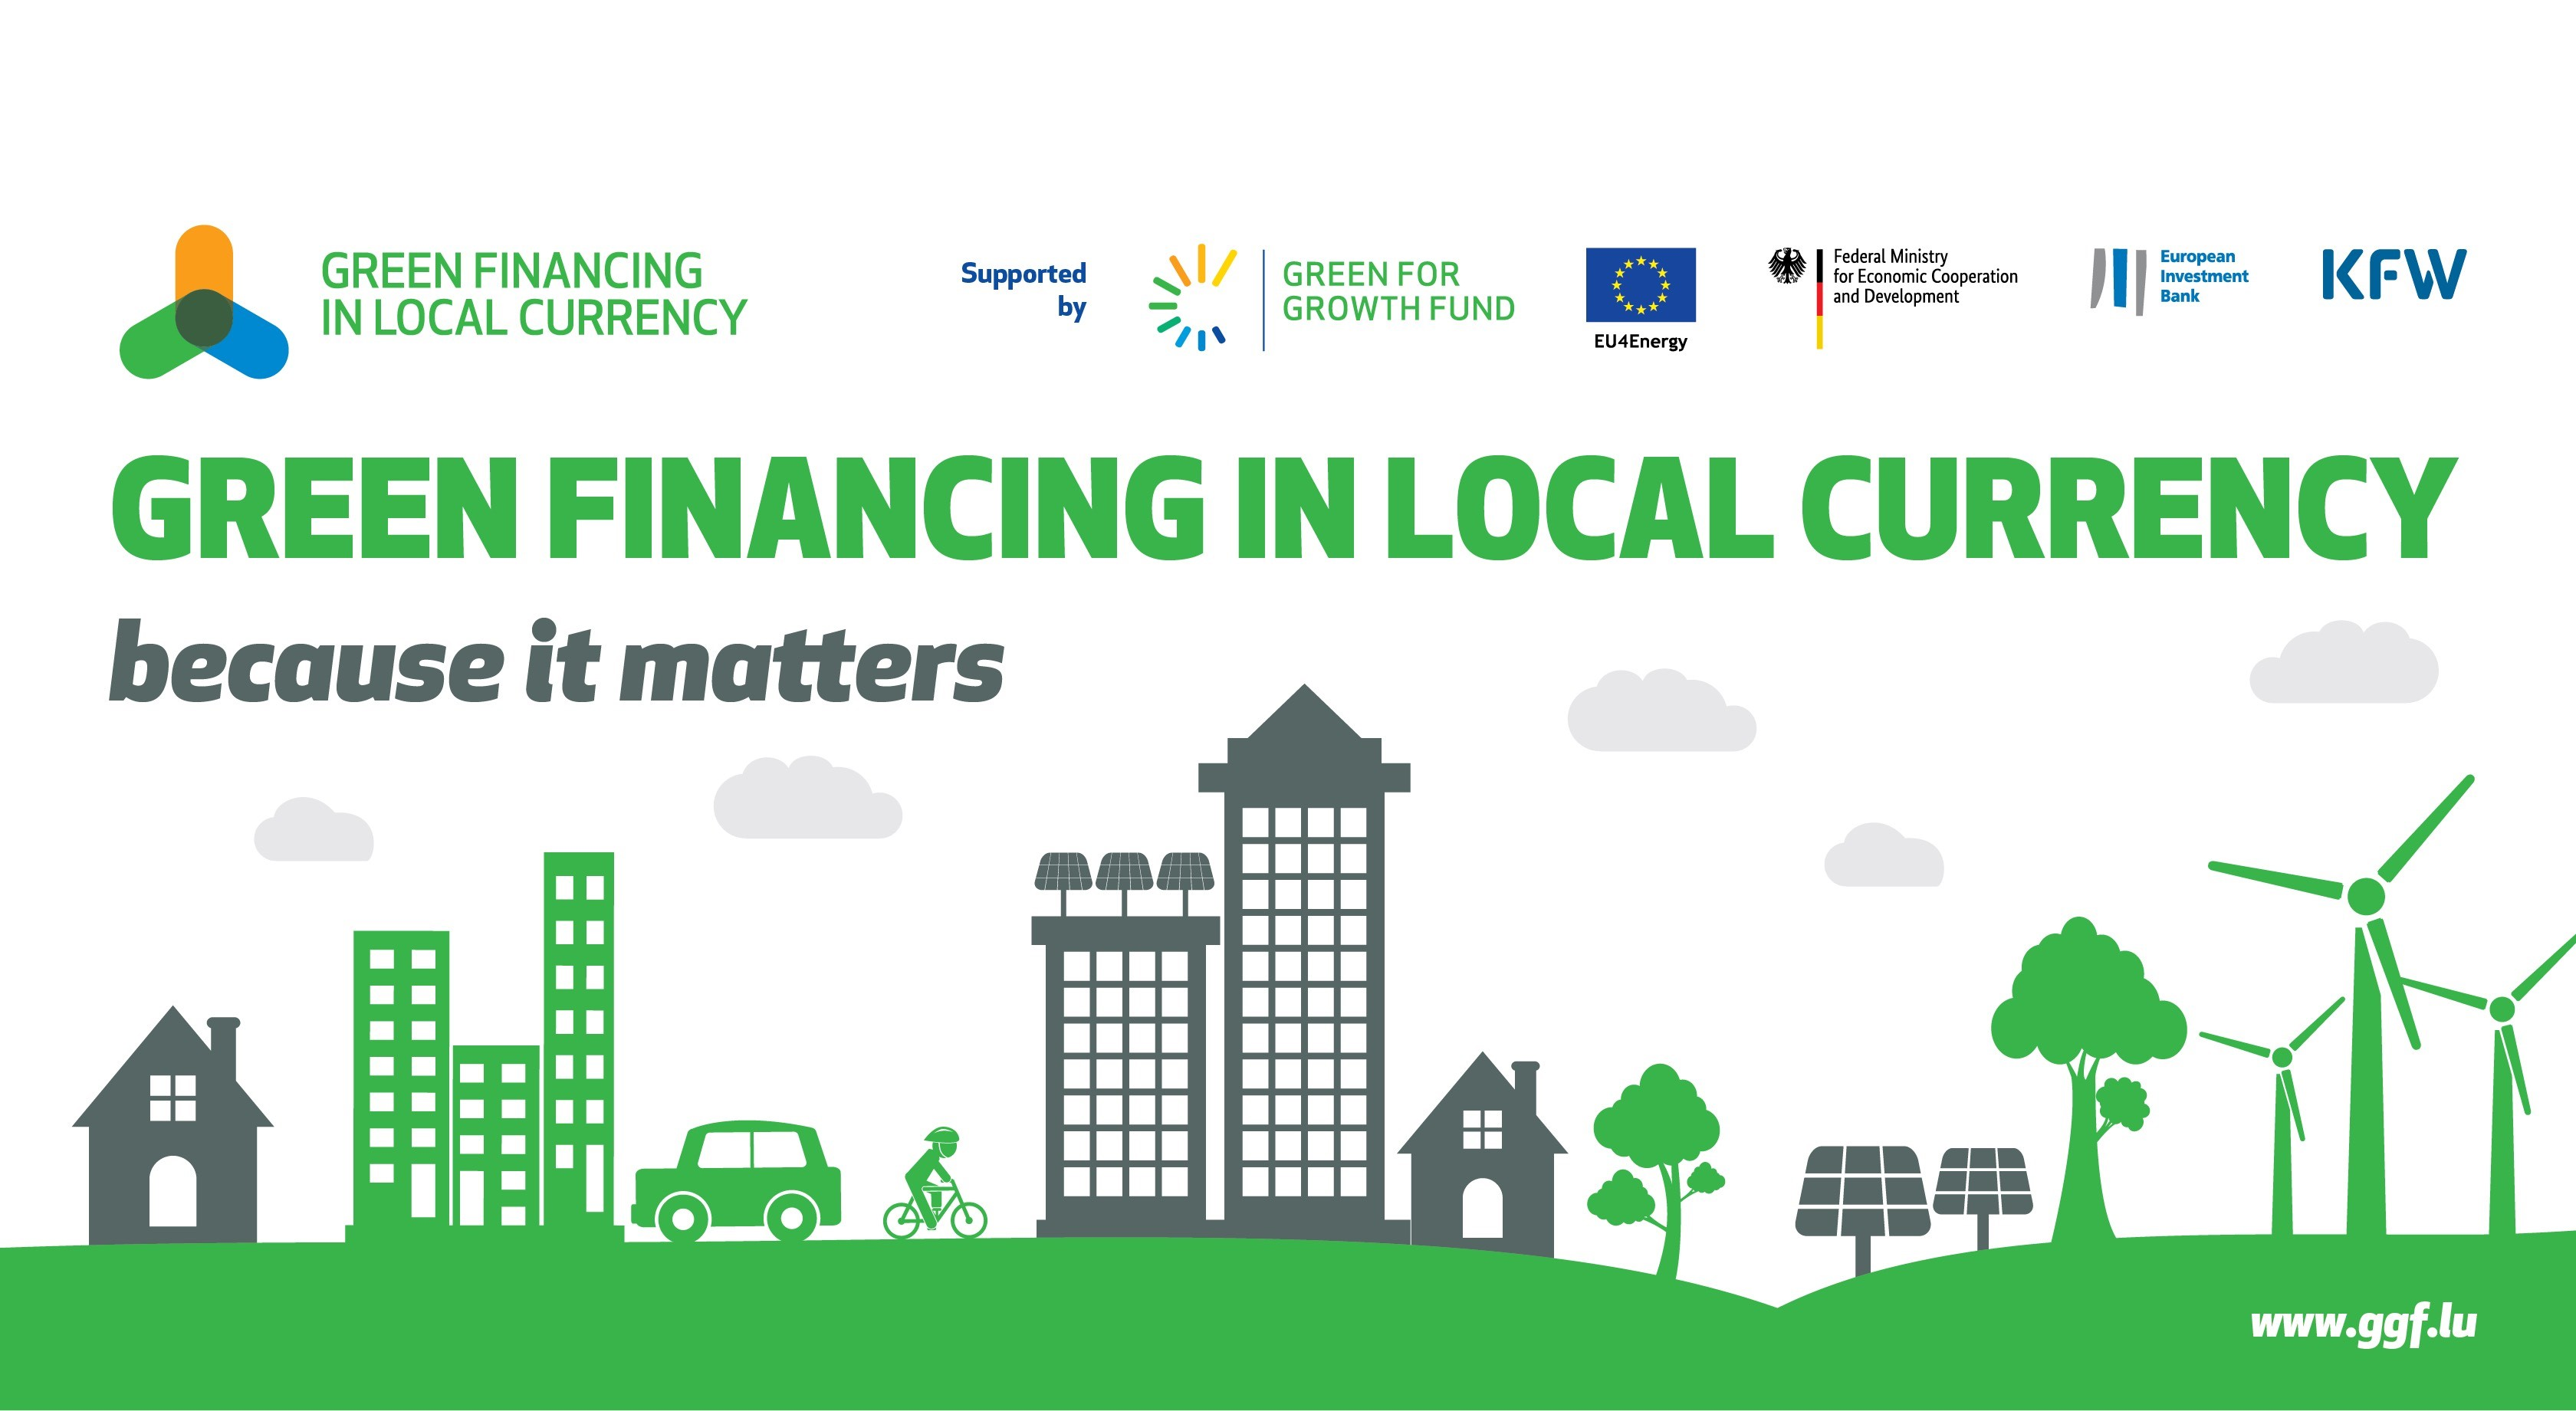 Green Financing in Local Currency graphic